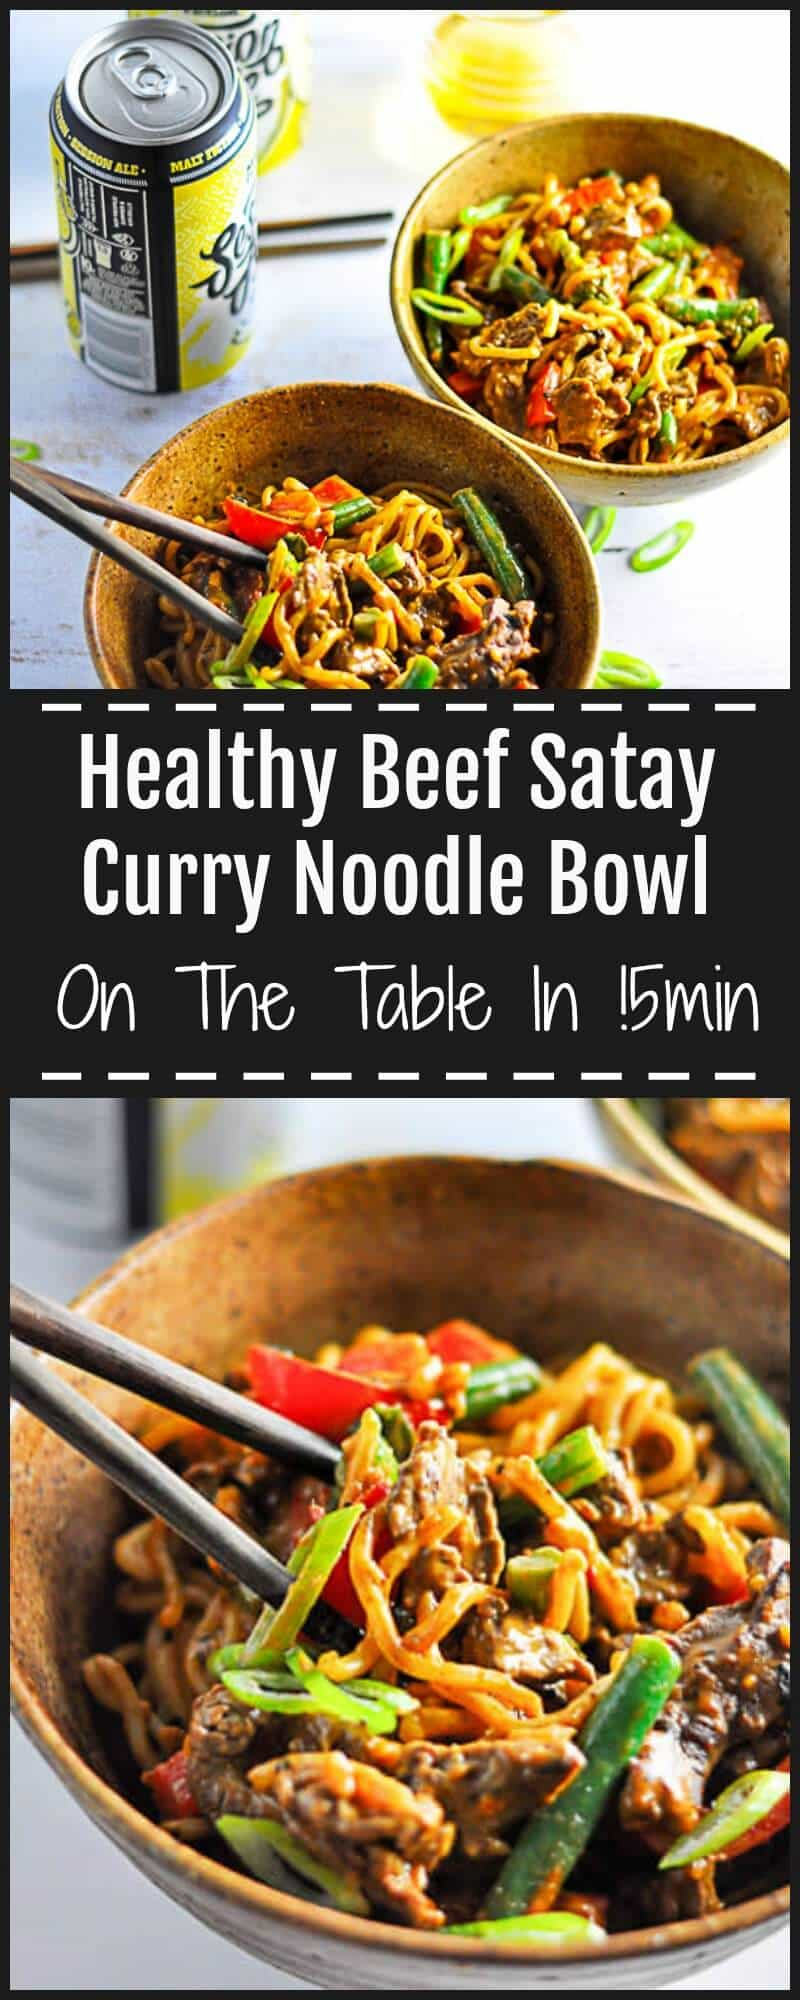 This Beef Satay Curry Noodles has tender pieces of flavoursome meat covered in rich peanut sauce with lightly stirfried vegetables and silky noodles.